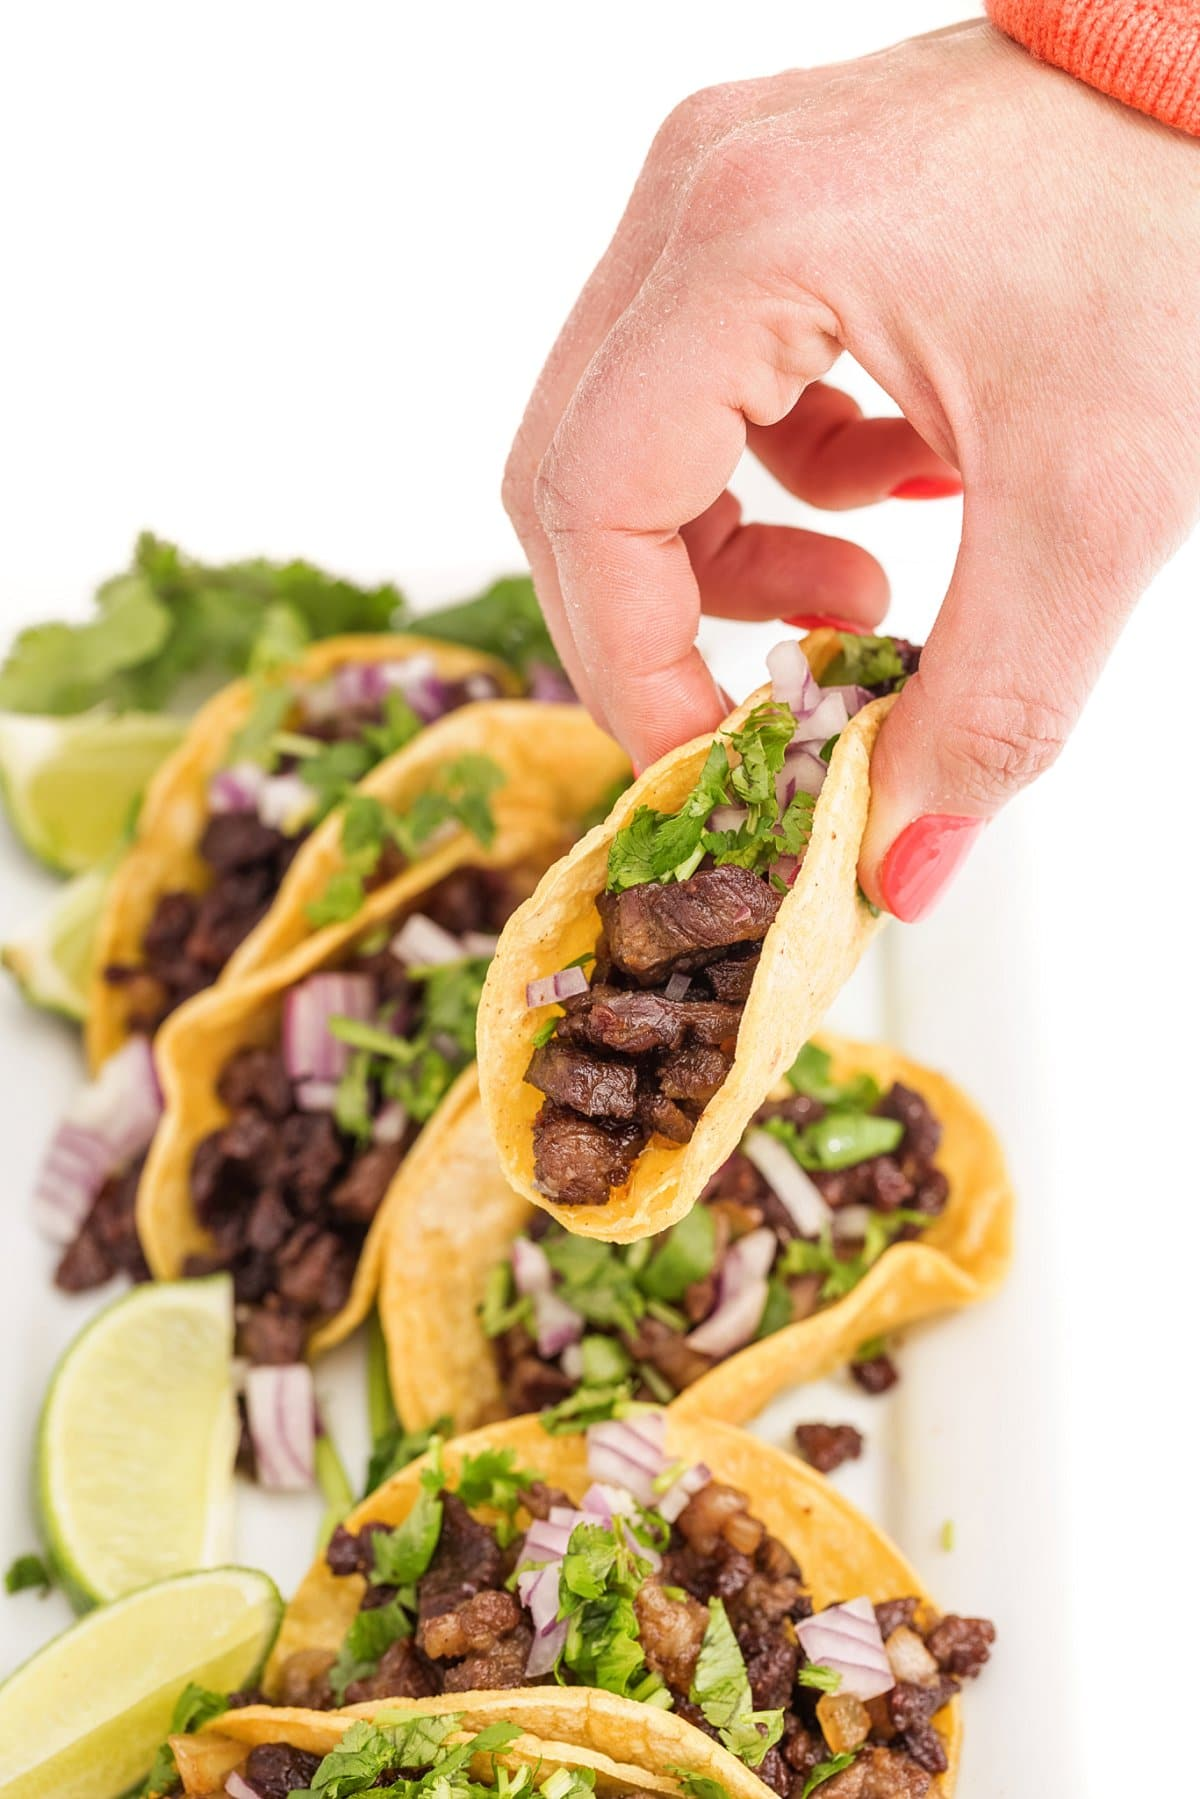 Plate of Mexican street tacos